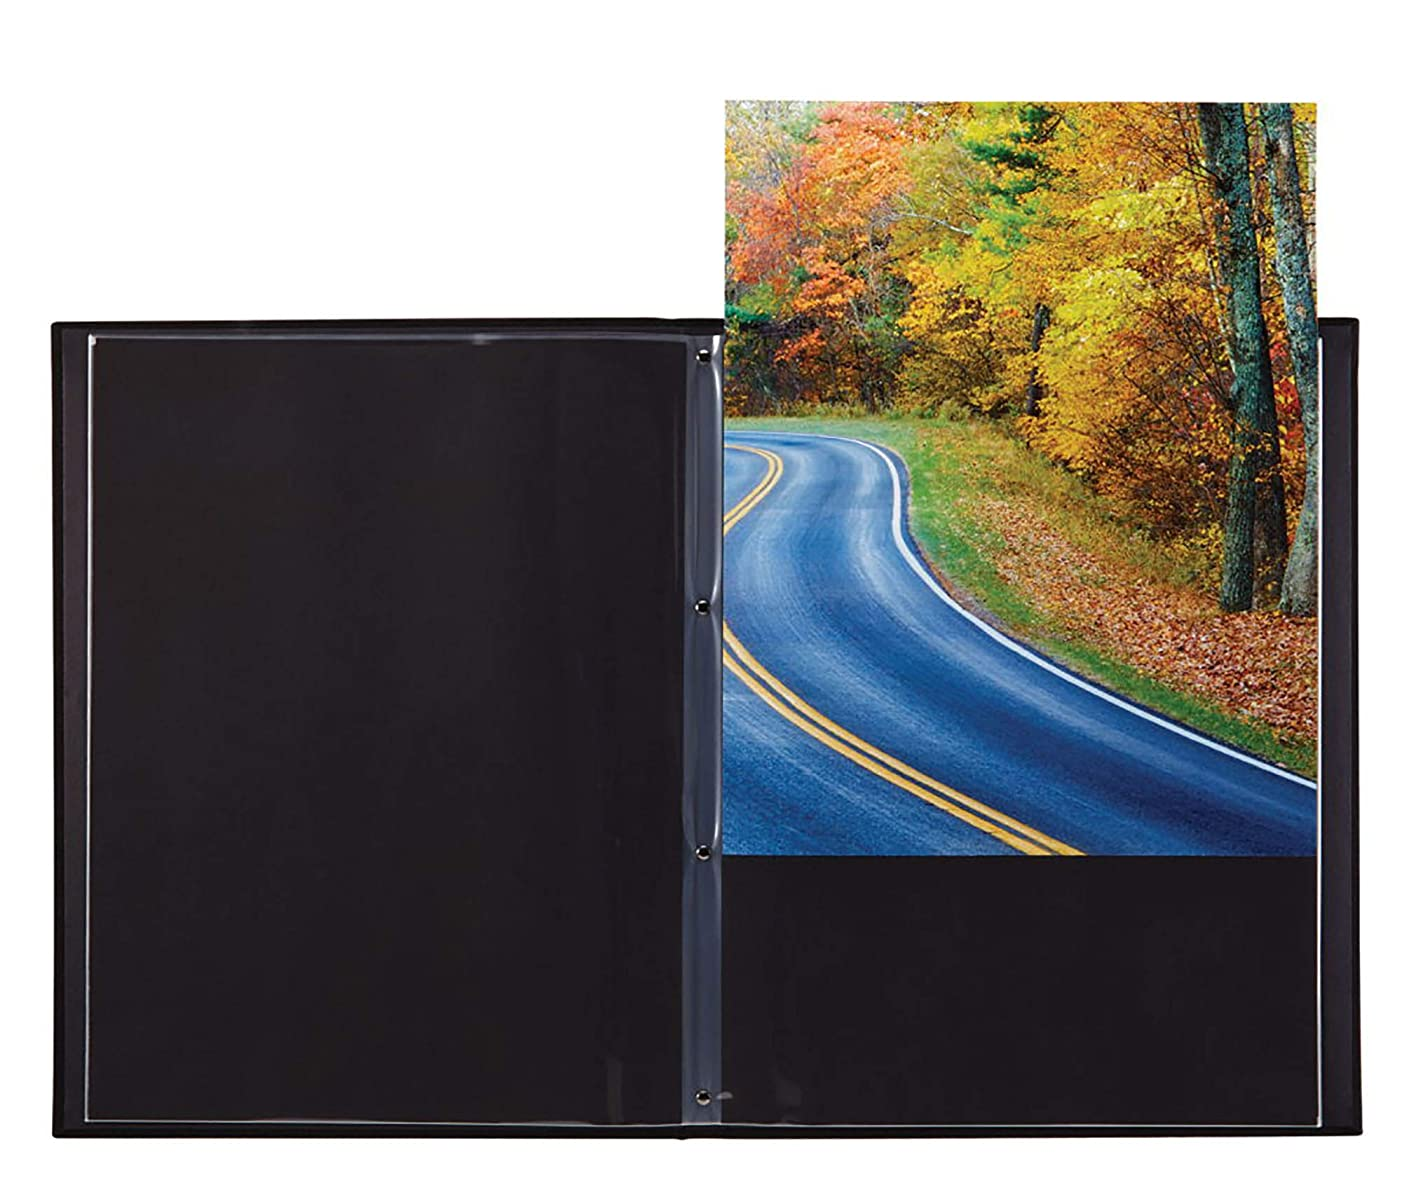 ProFolio by Itoya, Professional Art and Photography Presentation Book Portfolio With 24 Pockets - 9 x 12 Inches